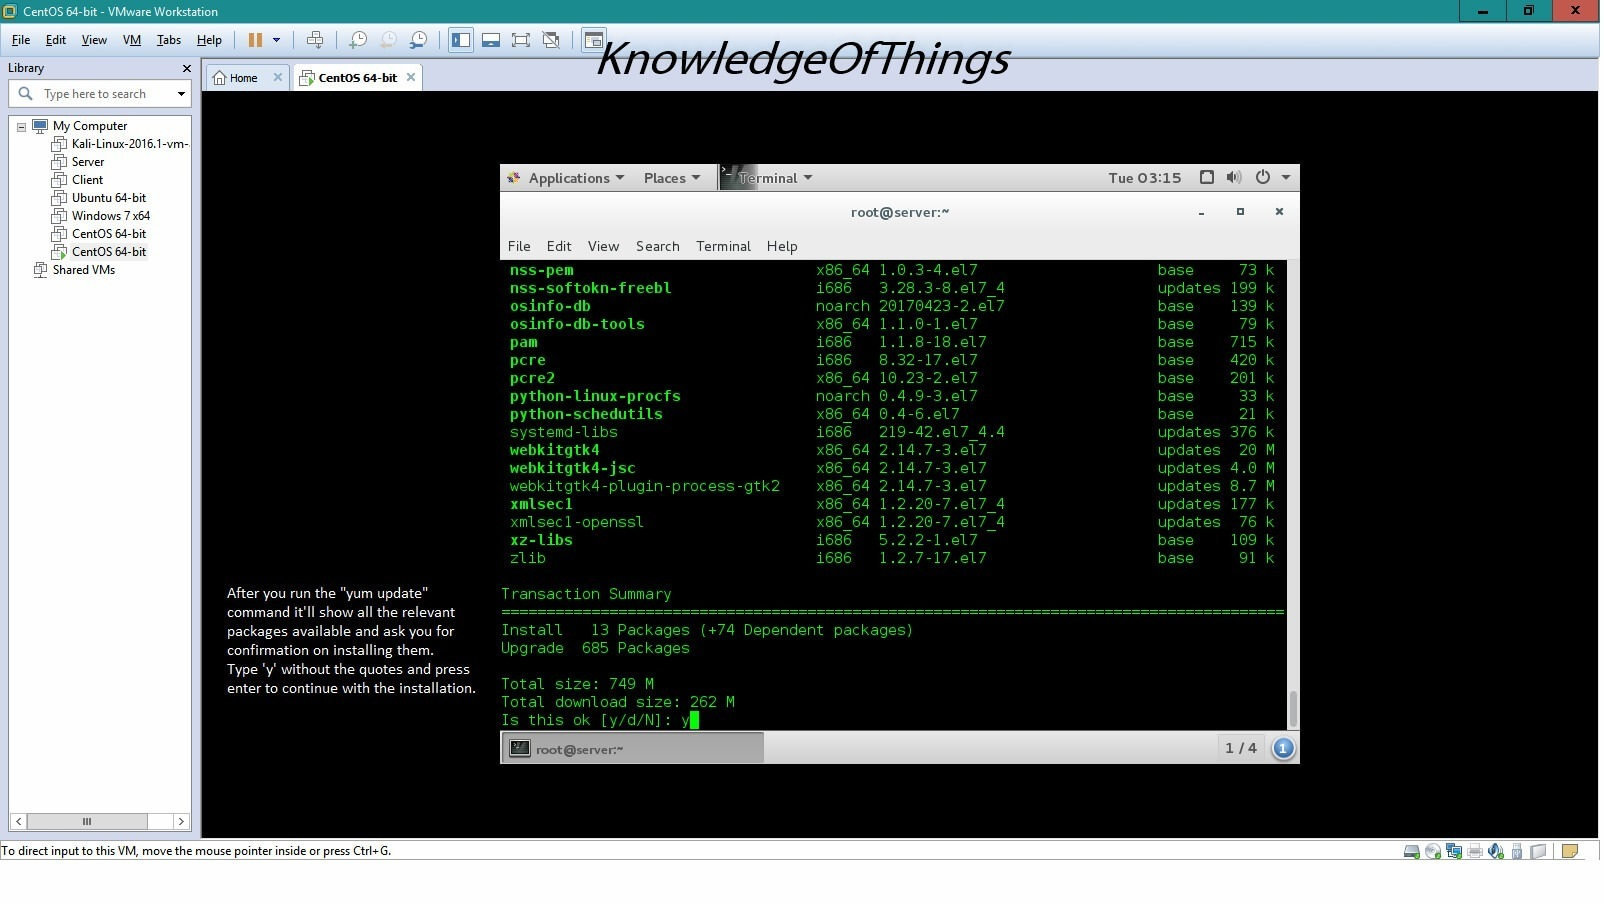 RPM' packages on CentOS 7 with 'YUM' - Knowledge of Things